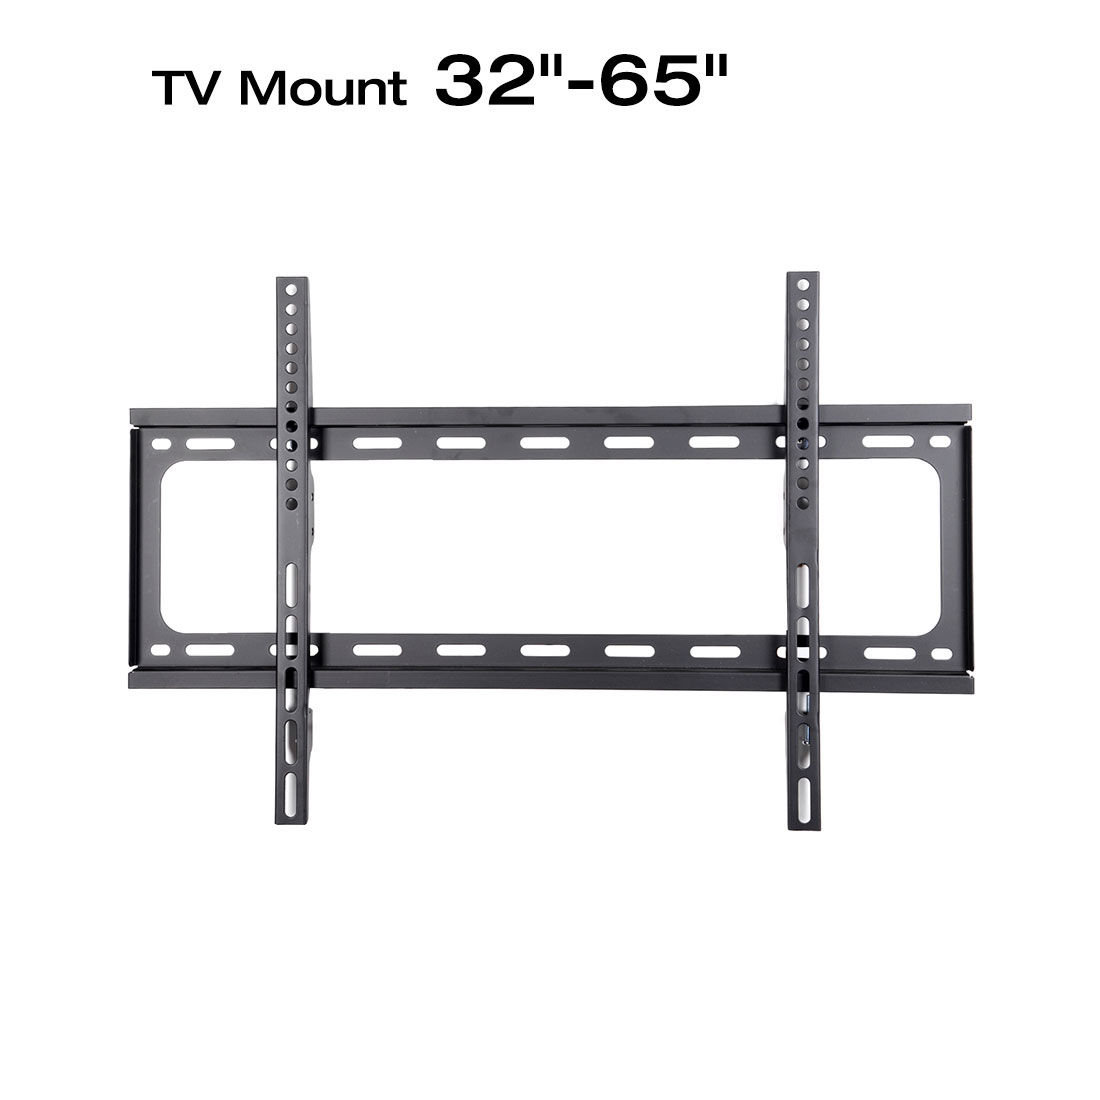 Loctek F1M LOW PROFILE FIXED LED TV BRACKET 32″ – 65″. It fits for Samsung LG VIZIO Seiki Sony Toshiba Sharp Panasonic TCL TV etc.